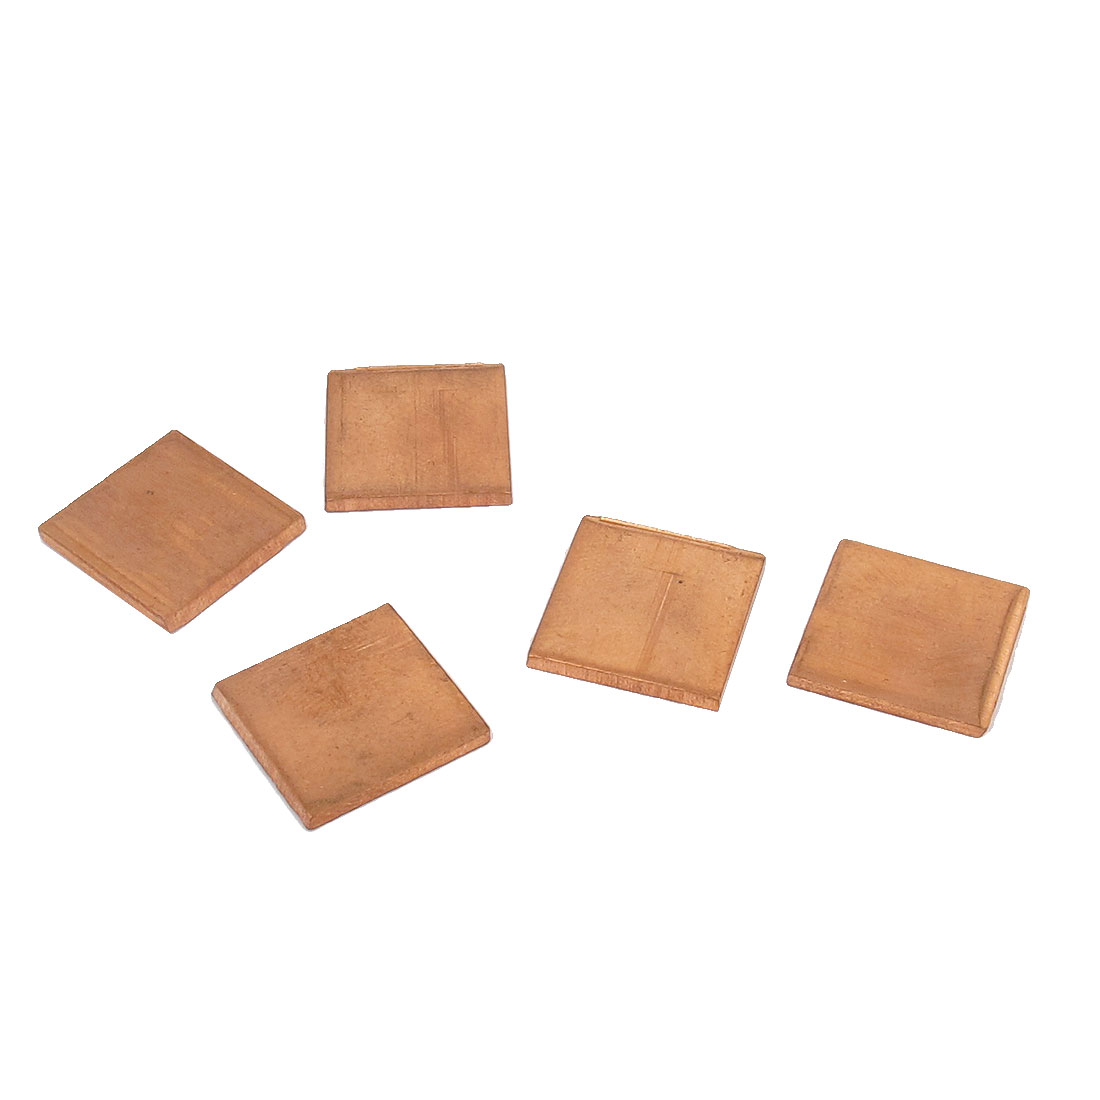 5pcs 15mm x 15mm x 1.2mm Copper Square Heatsink Thermal Pad Shim for PC Laptop CPU